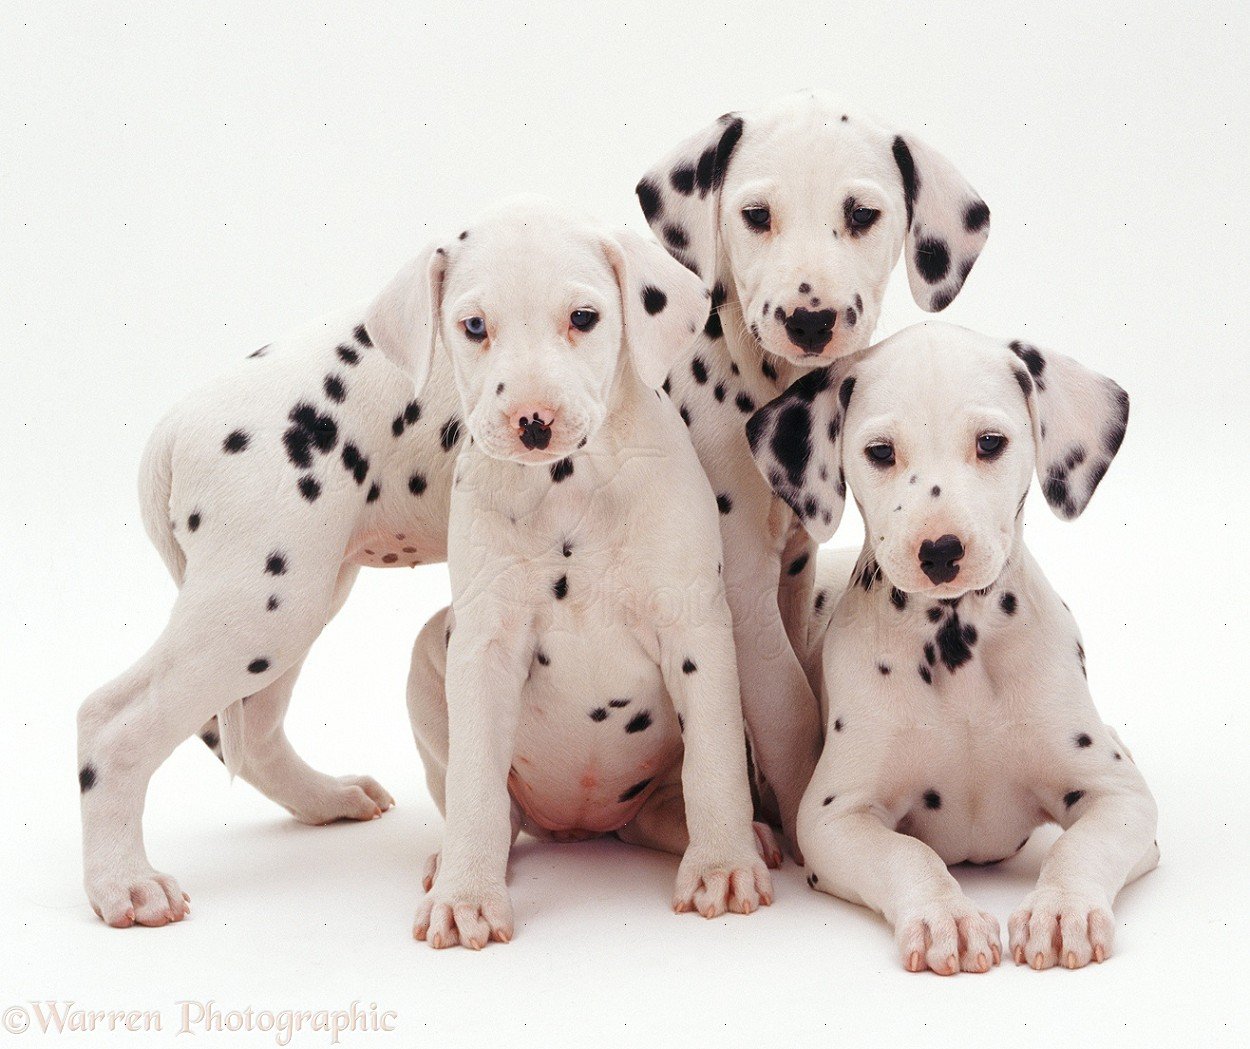 ... puppies, 8 weeks old. The pup with one blue eye is unilaterally deaf